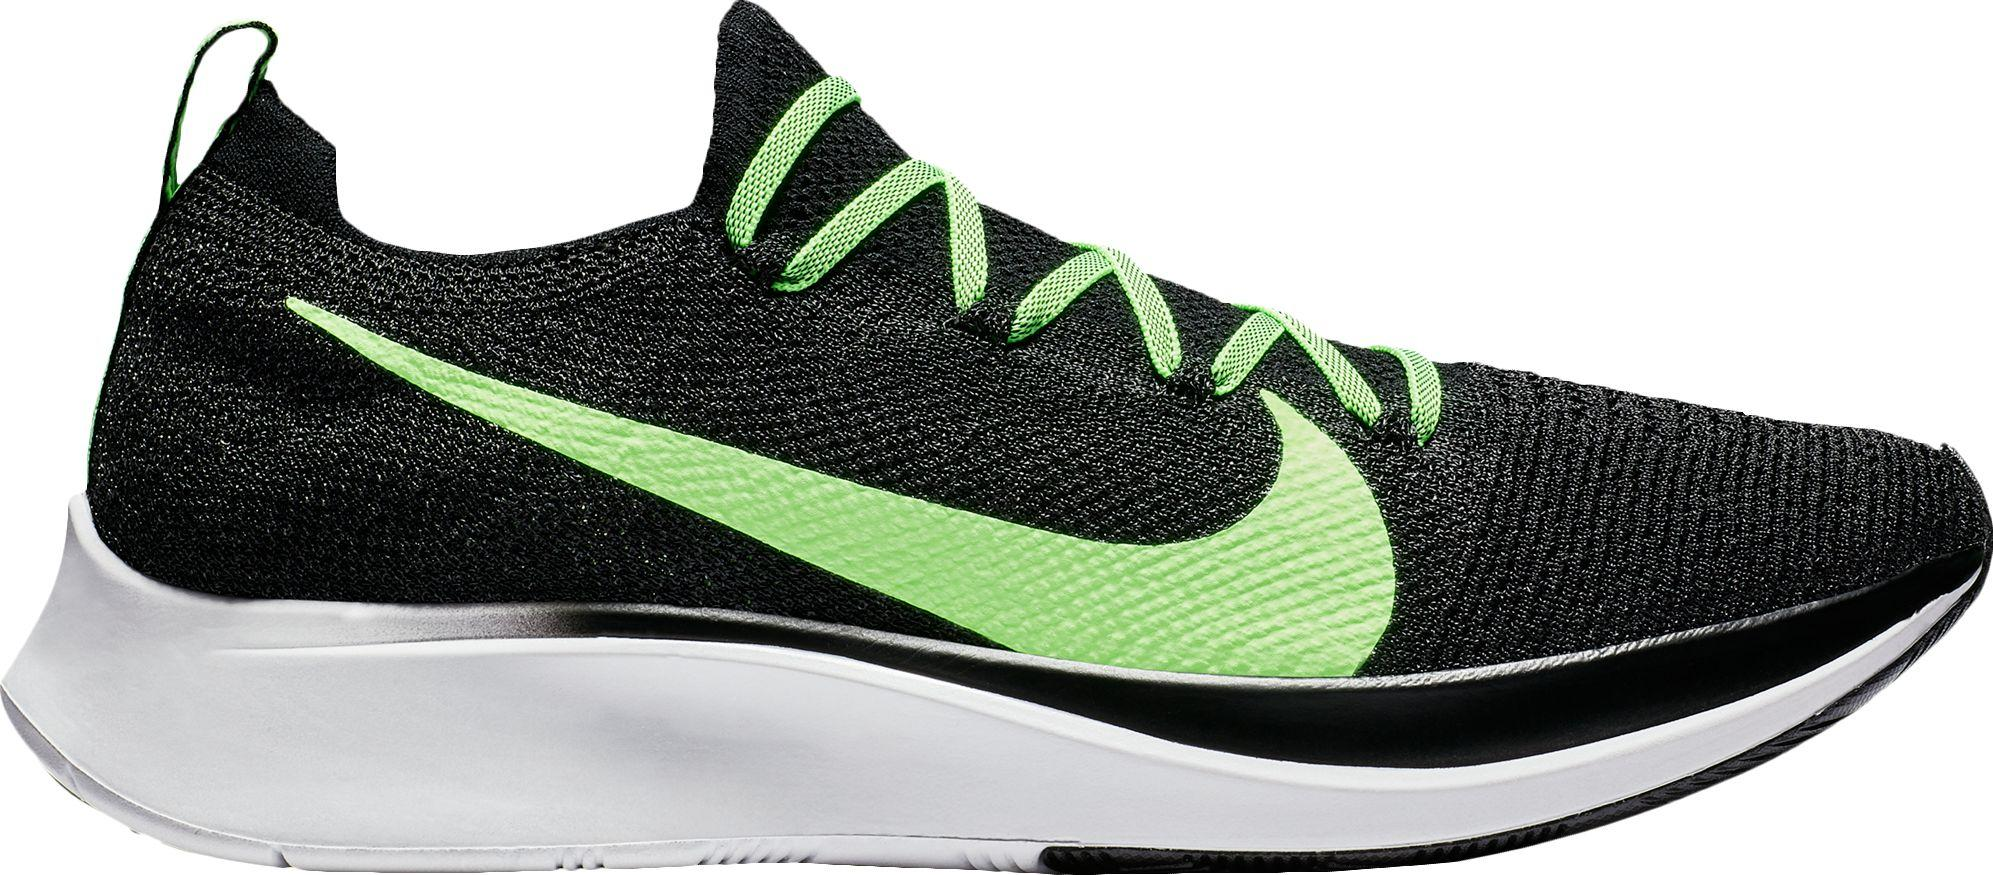 separation shoes 0c028 5bdb5 Nike - Green Zoom Fly Flyknit Running Shoes for Men - Lyst